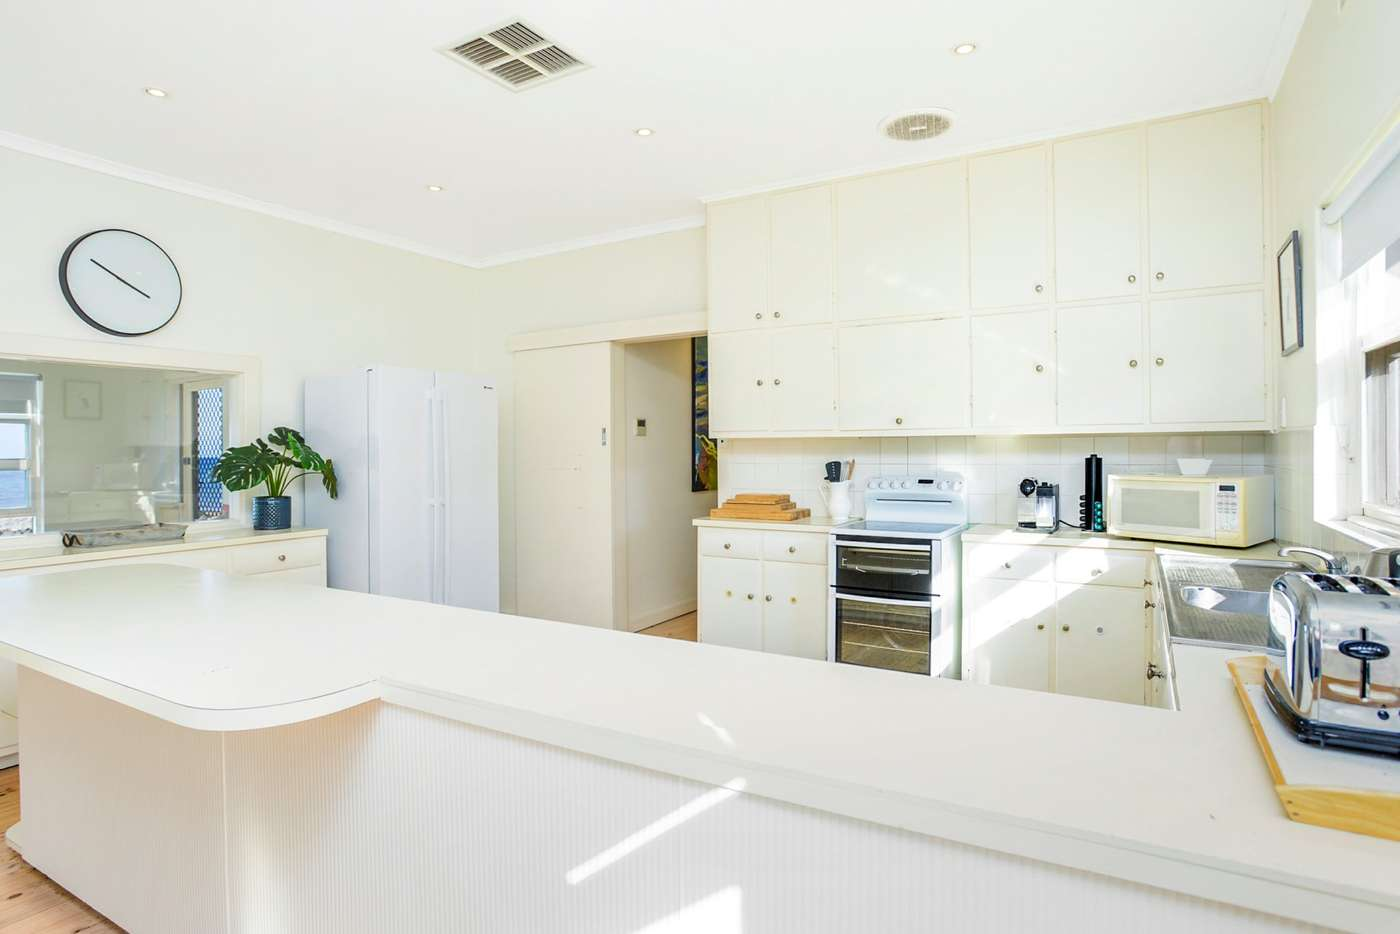 Seventh view of Homely house listing, 6 Investigator Crescent, Encounter Bay SA 5211